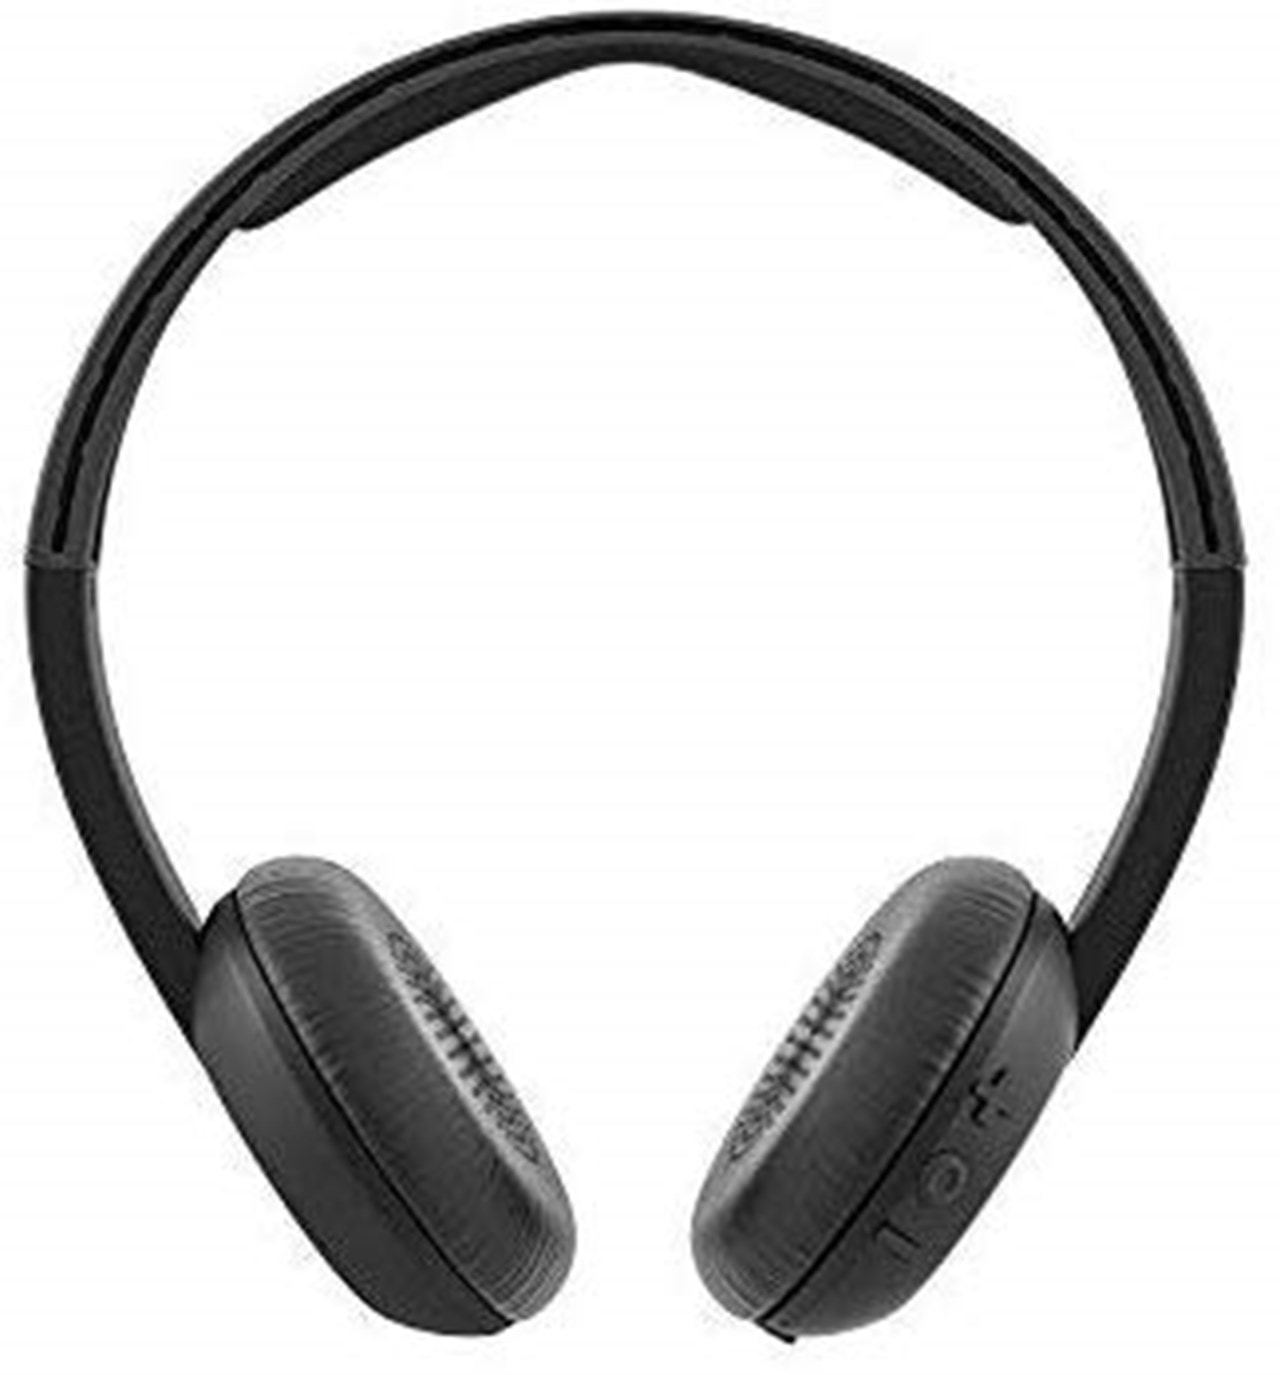 Skullcandy Uproar Black / Grey Bluetooth Headphones - 2